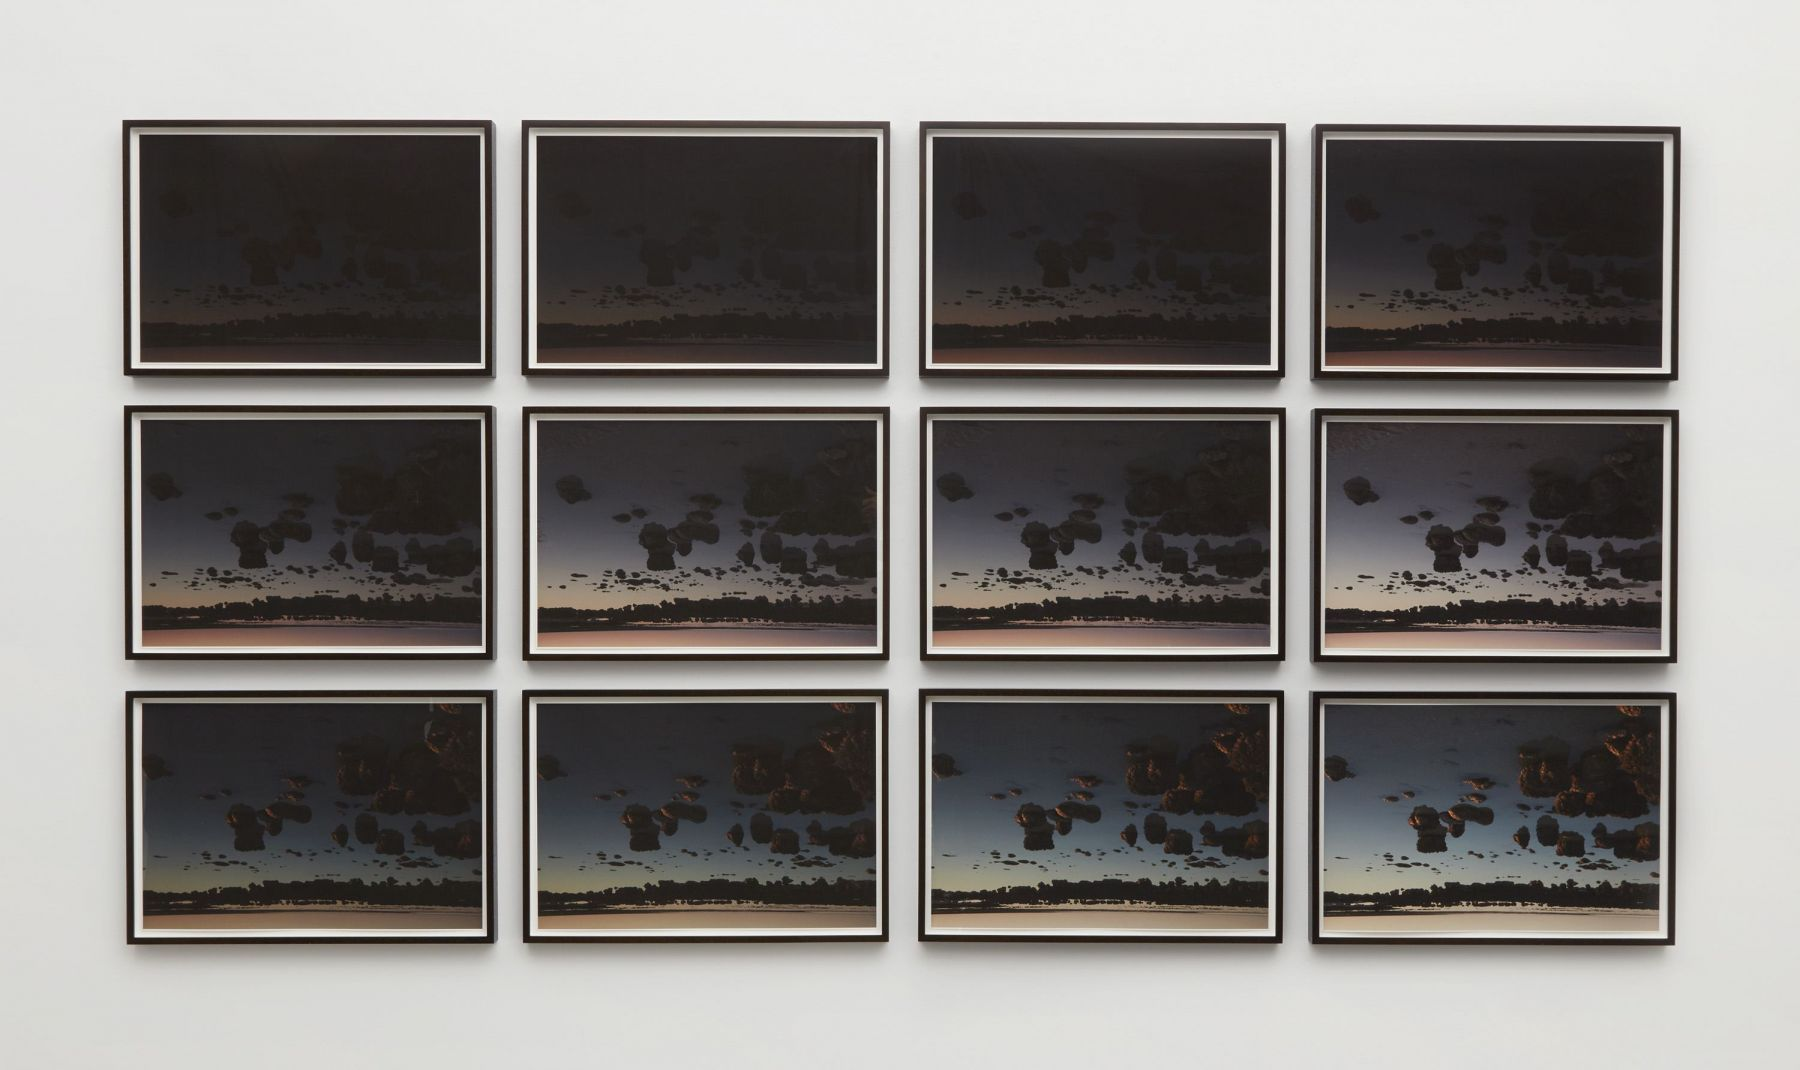 series of photographs of clouds by thiago rocha pitta in a chelsea art gallery